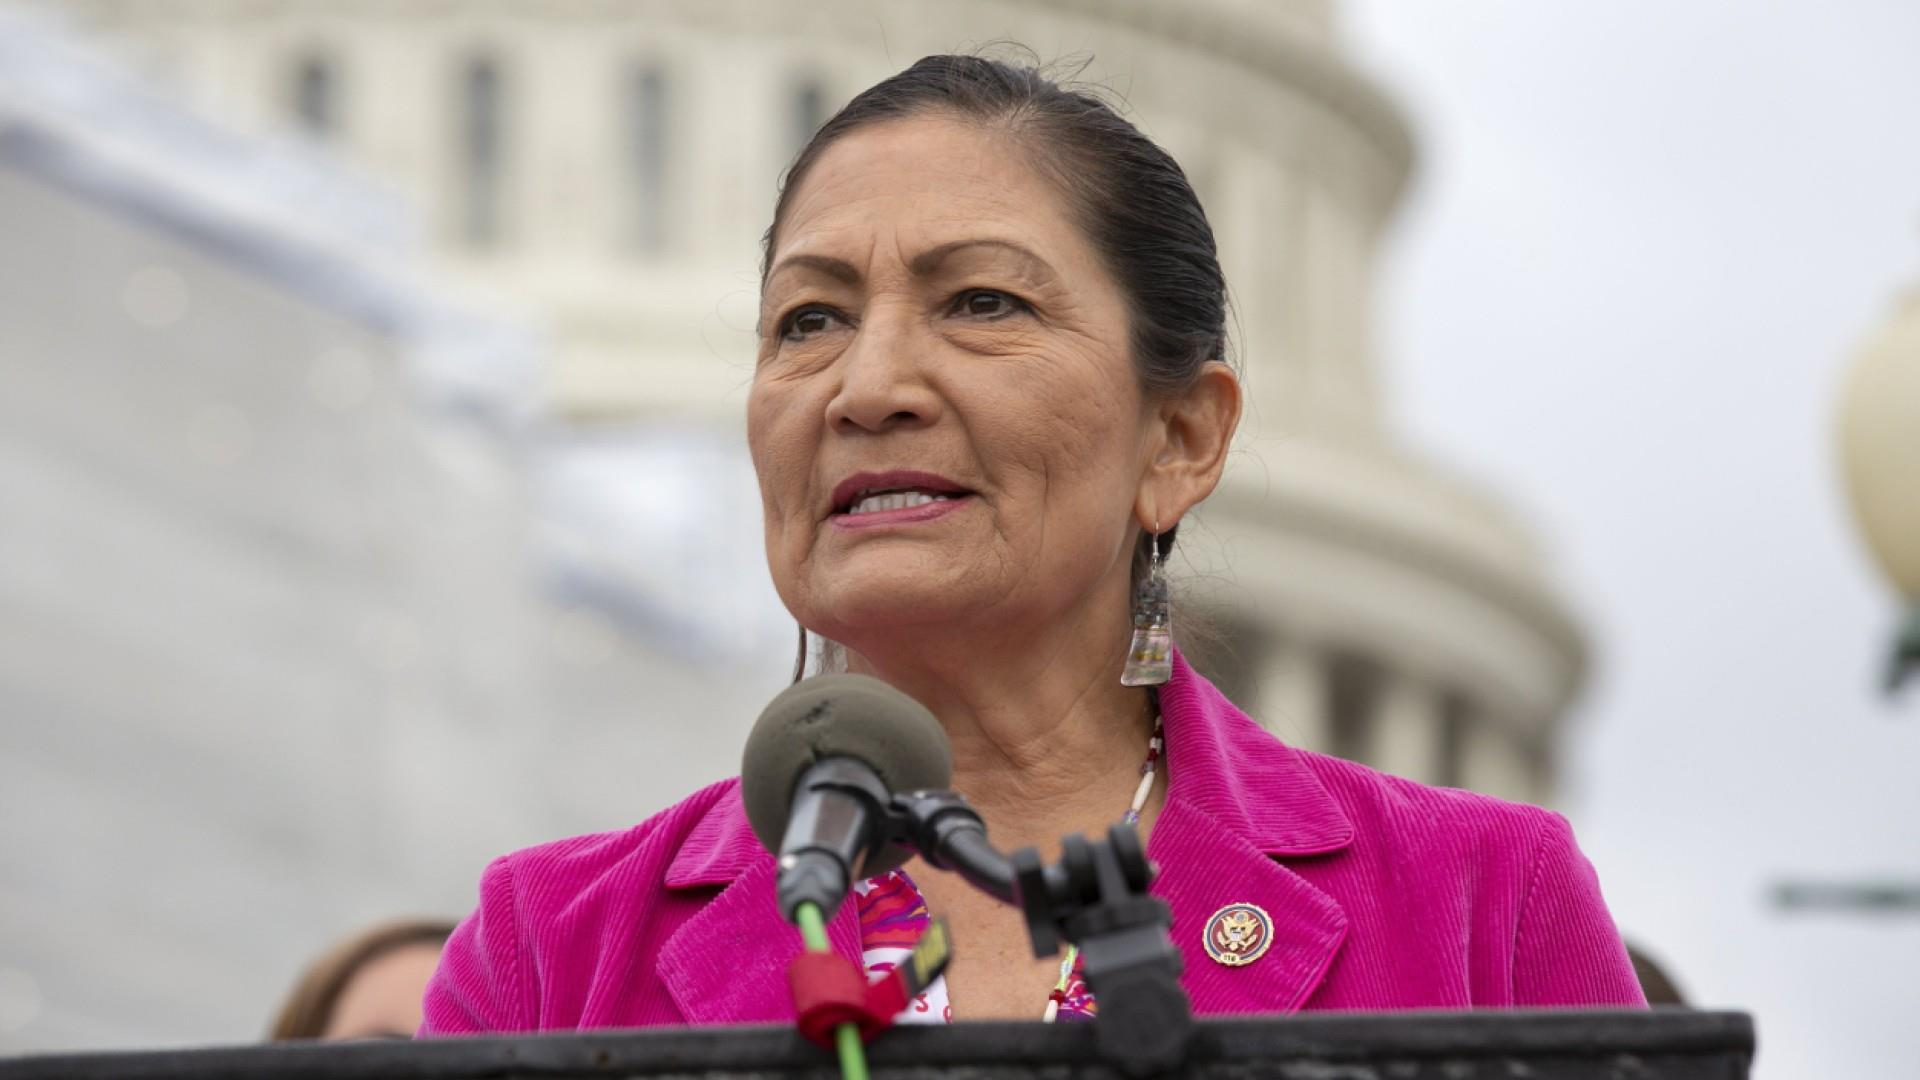 Rep. Haaland: As a Native American, I'd never tell anyone to leave this country